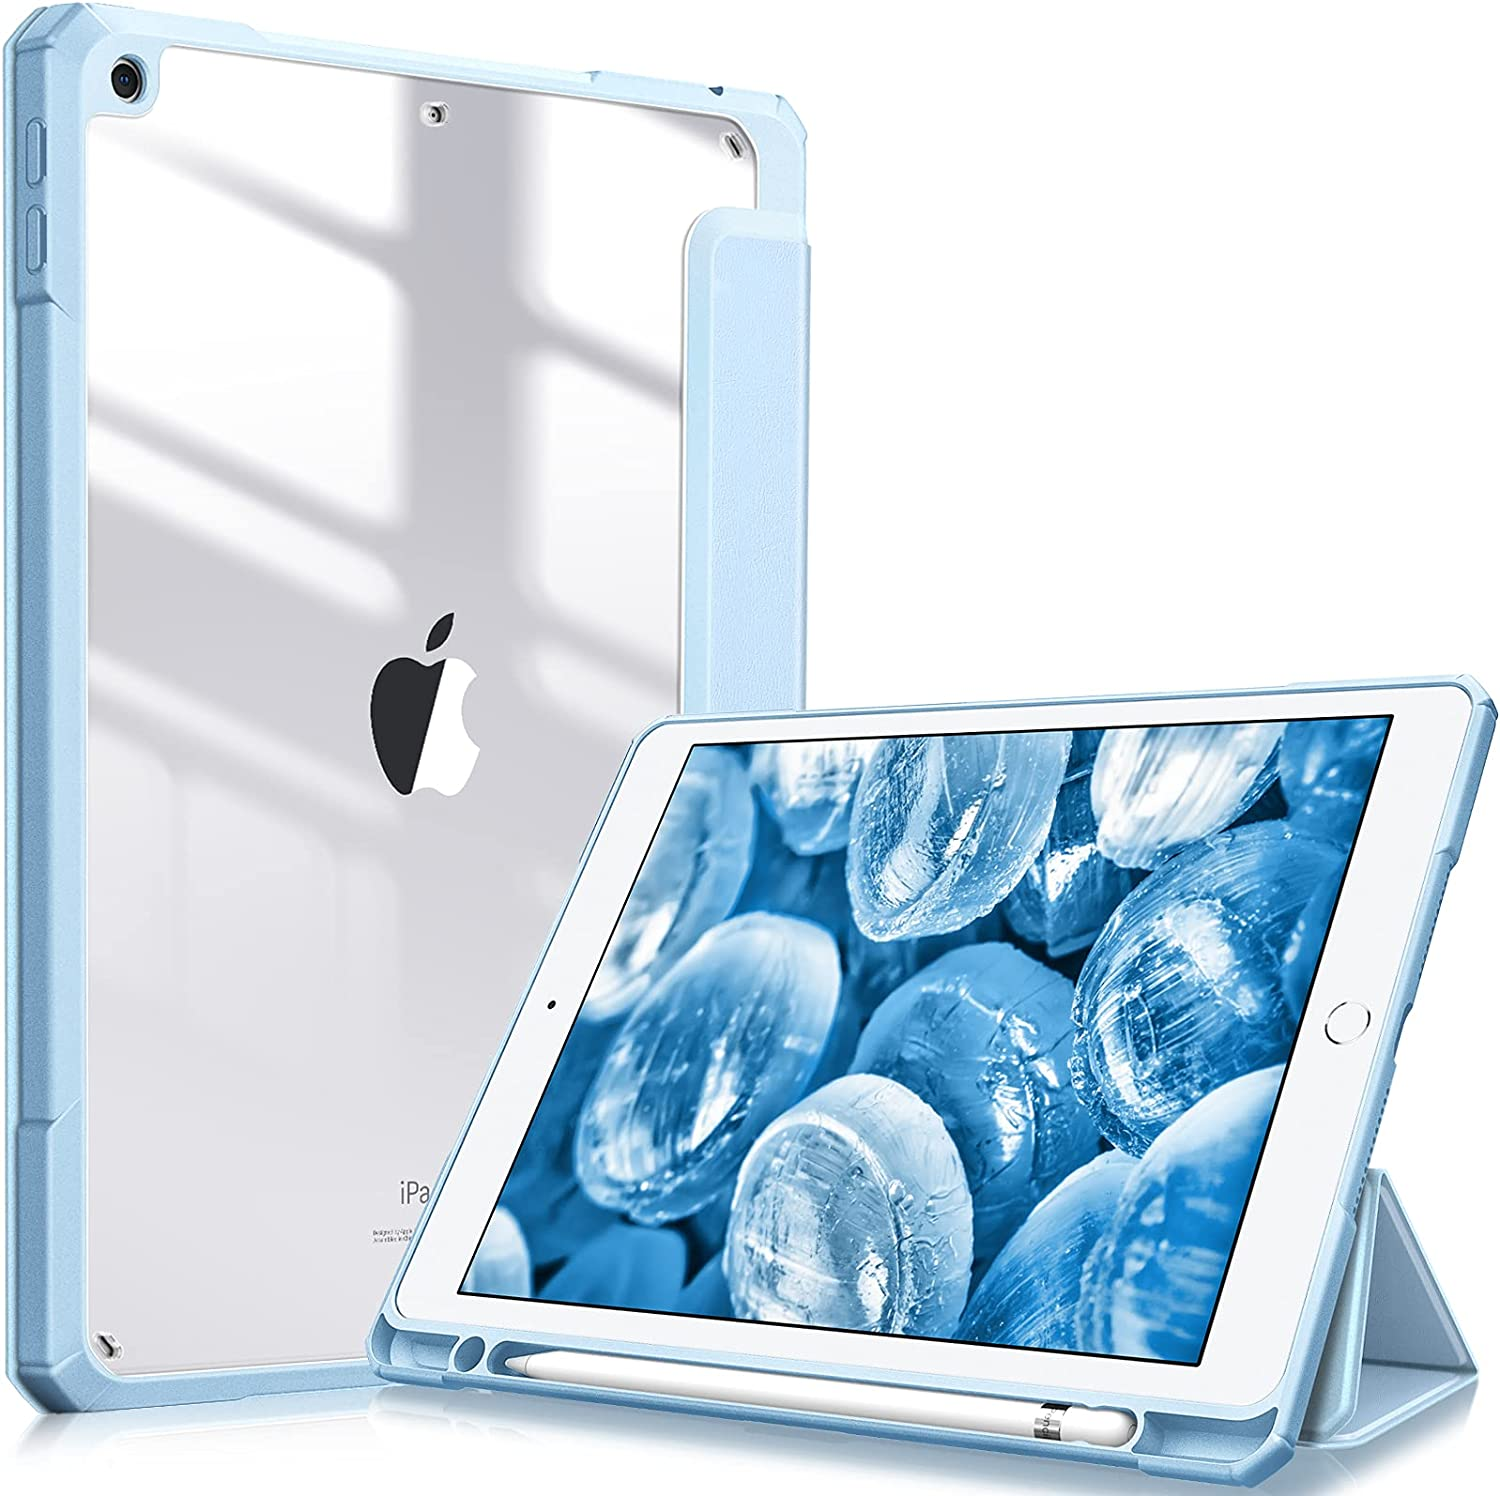 Fintie Hybrid Slim Case for iPad 8th Generation (2020) / 7th Gen (2019) 10.2 Inch - [Built-in Pencil Holder] Shockproof Cover with Clear Transparent Back Shell, Auto Wake/Sleep, Sky Blue